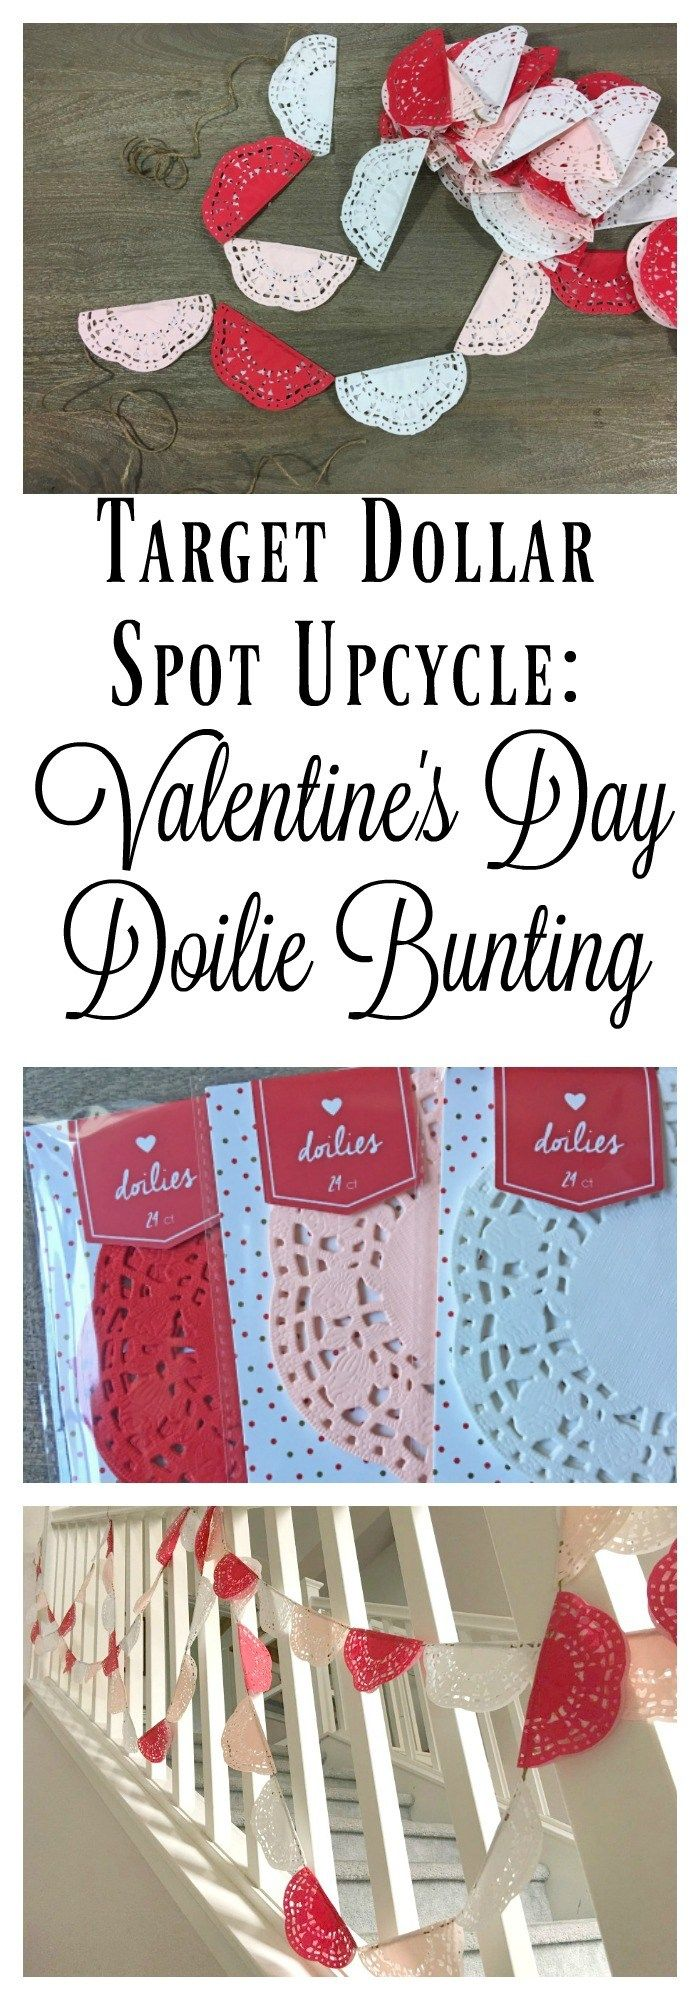 target dollar spot upcycle valentine's day love letter garland jolly and happy